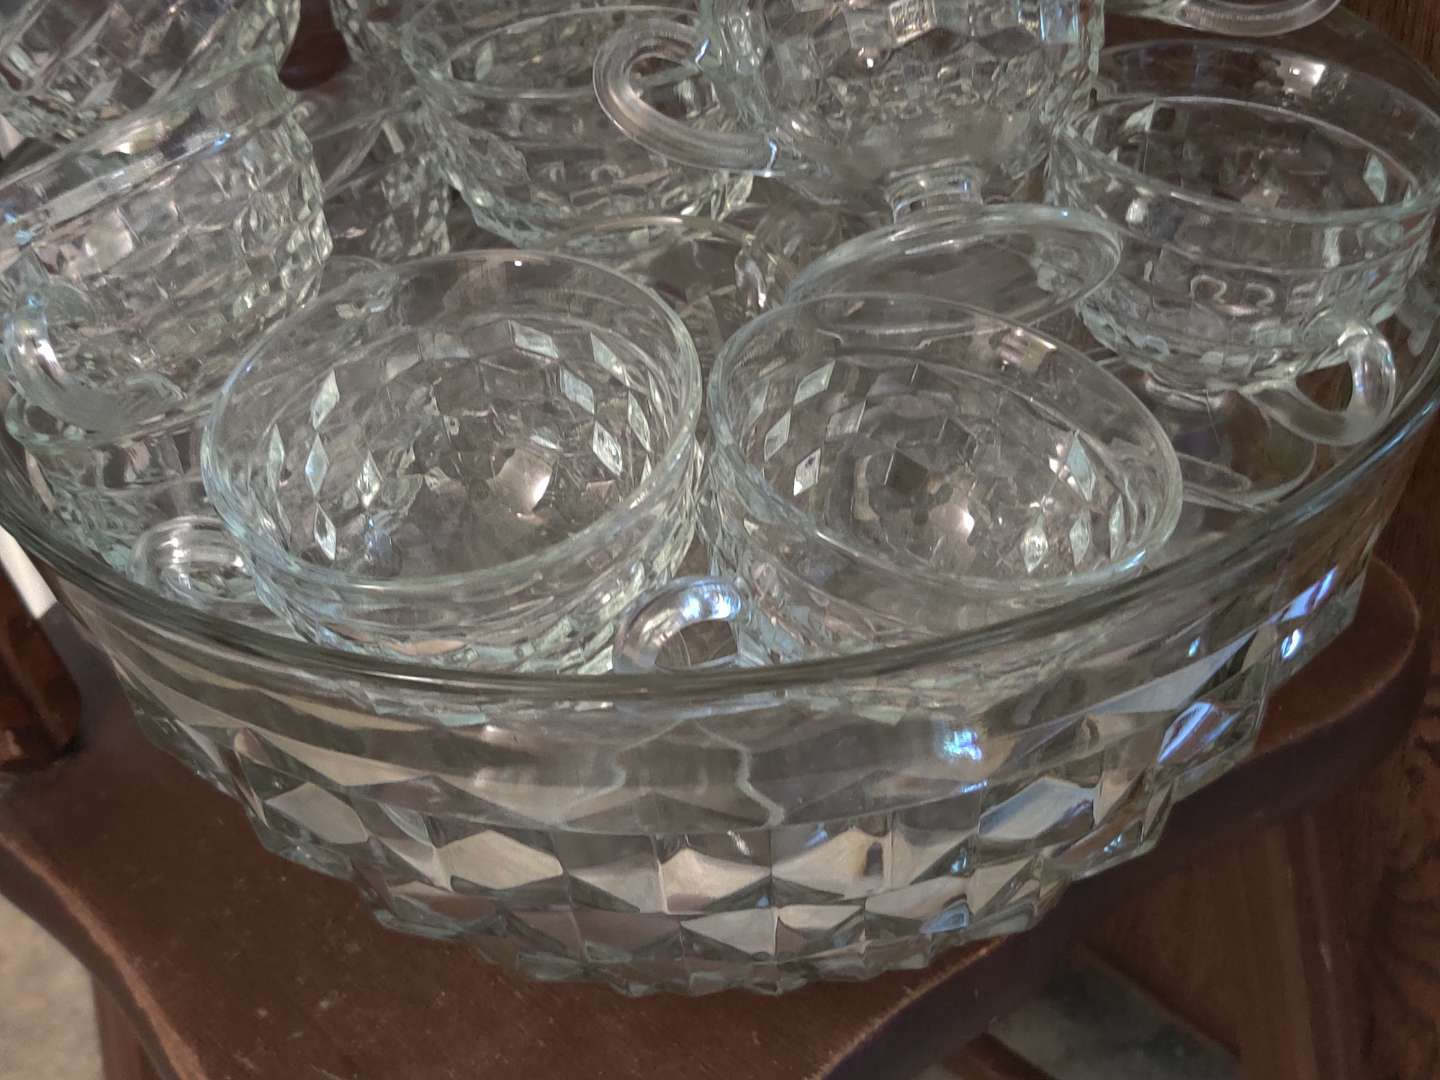 # 141 American fostoria punch bowl set punch bowl and 24 cups 12 of them are fostoria 12 or not